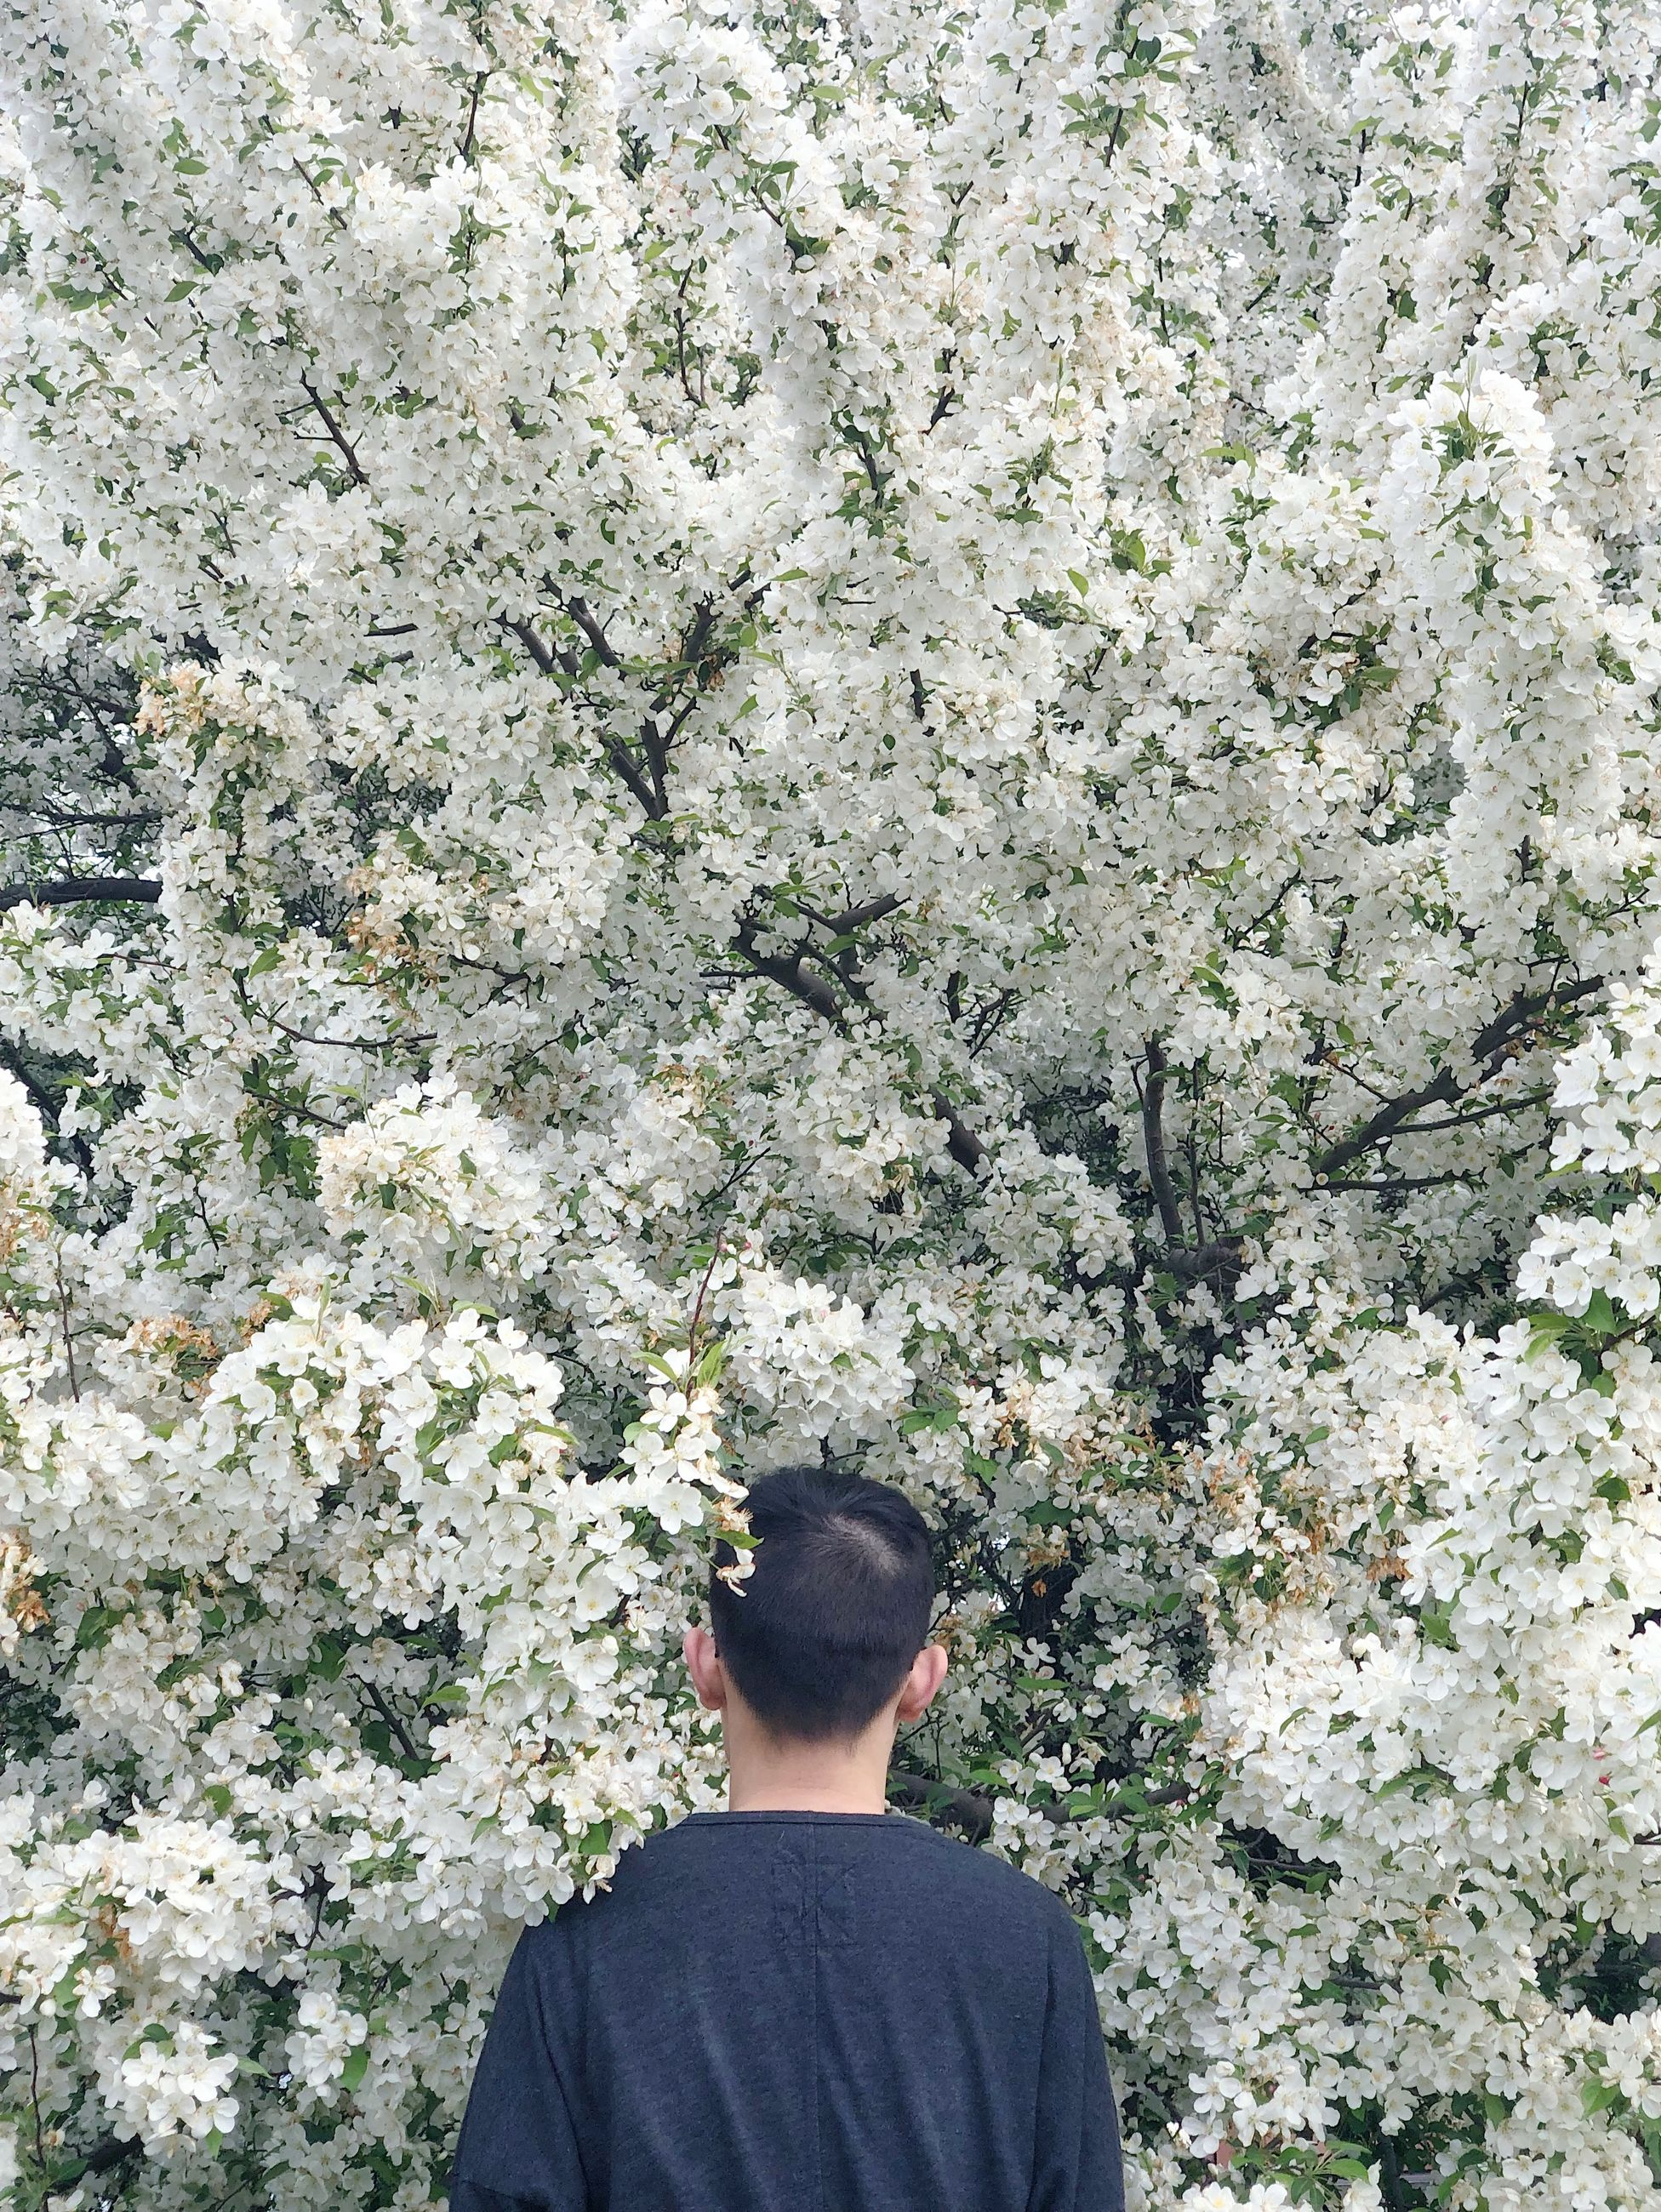 one person, rear view, real people, leisure activity, plant, lifestyles, growth, men, day, tree, standing, nature, flowering plant, flower, outdoors, beauty in nature, casual clothing, young adult, young men, cherry blossom